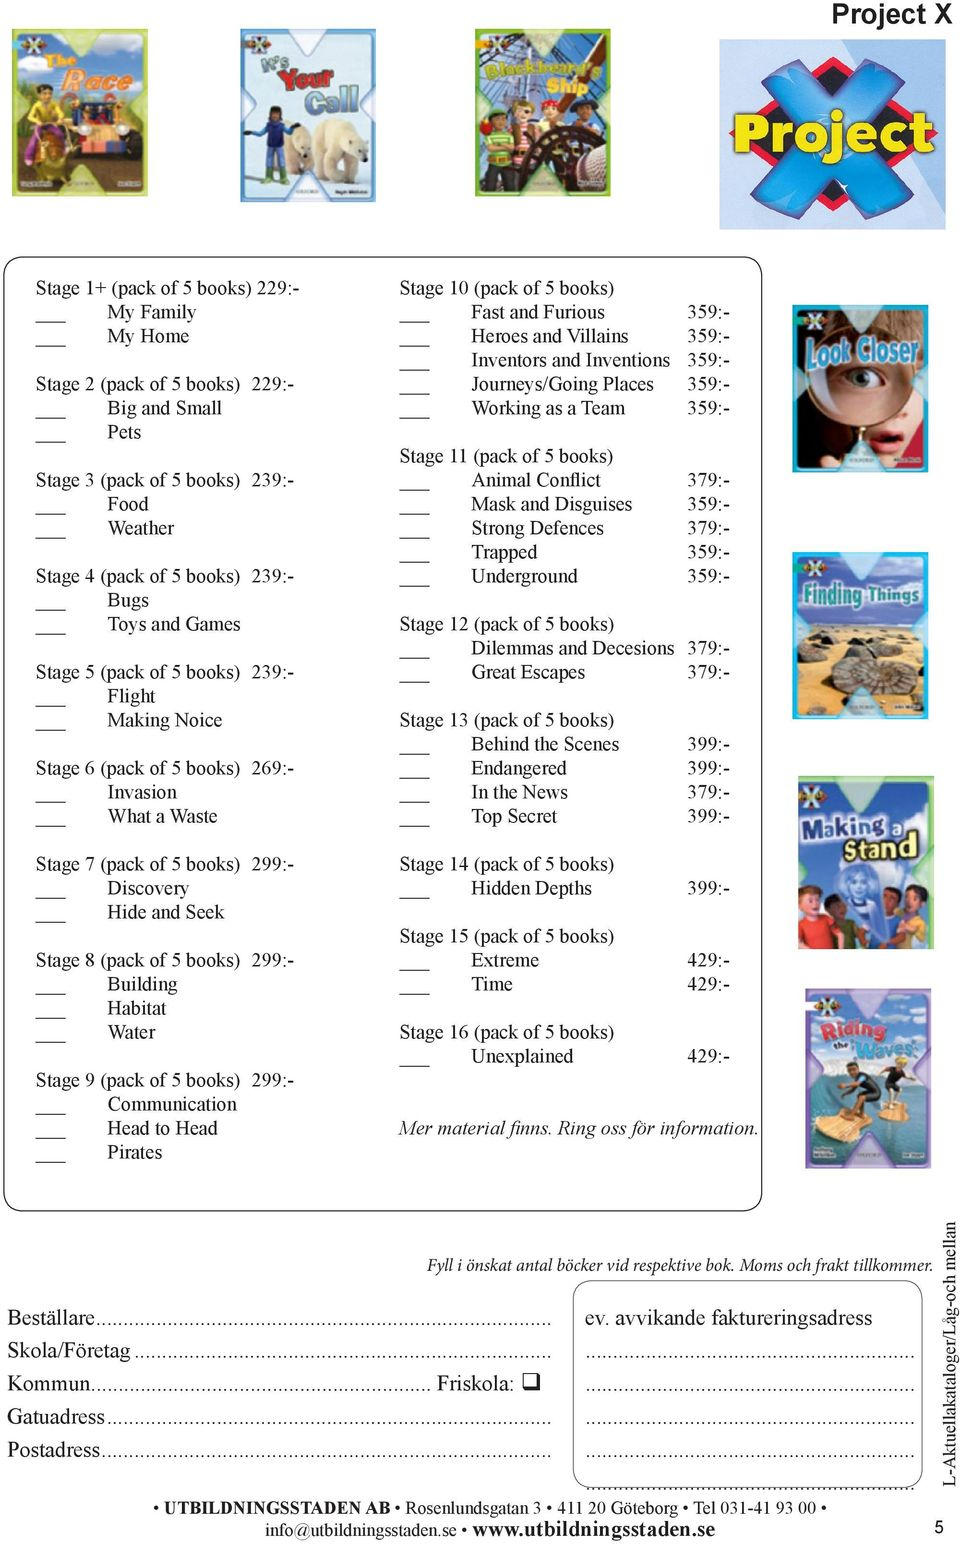 299:- Building Habitat Water Stage 9 (pack of 5 books) 299:- Communication Head to Head Pirates Stage 10 (pack of 5 books) Fast and Furious 359:- Heroes and Villains 359:- Inventors and Inventions